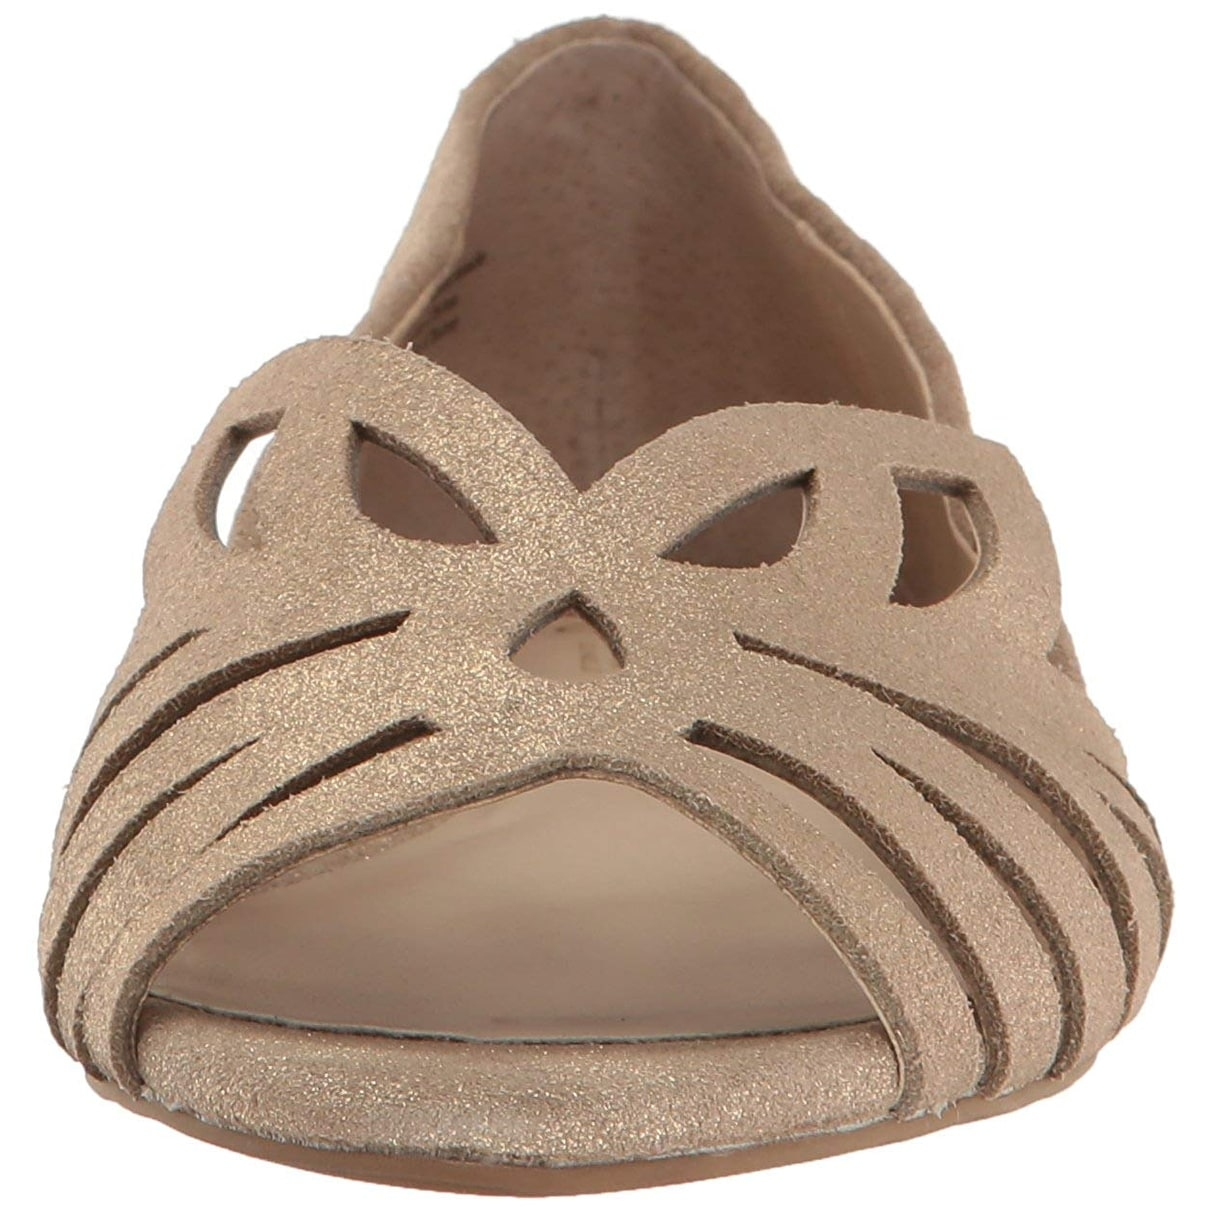 181b4a1ab69404 Buy Seychelles Women s Flats Online at Overstock